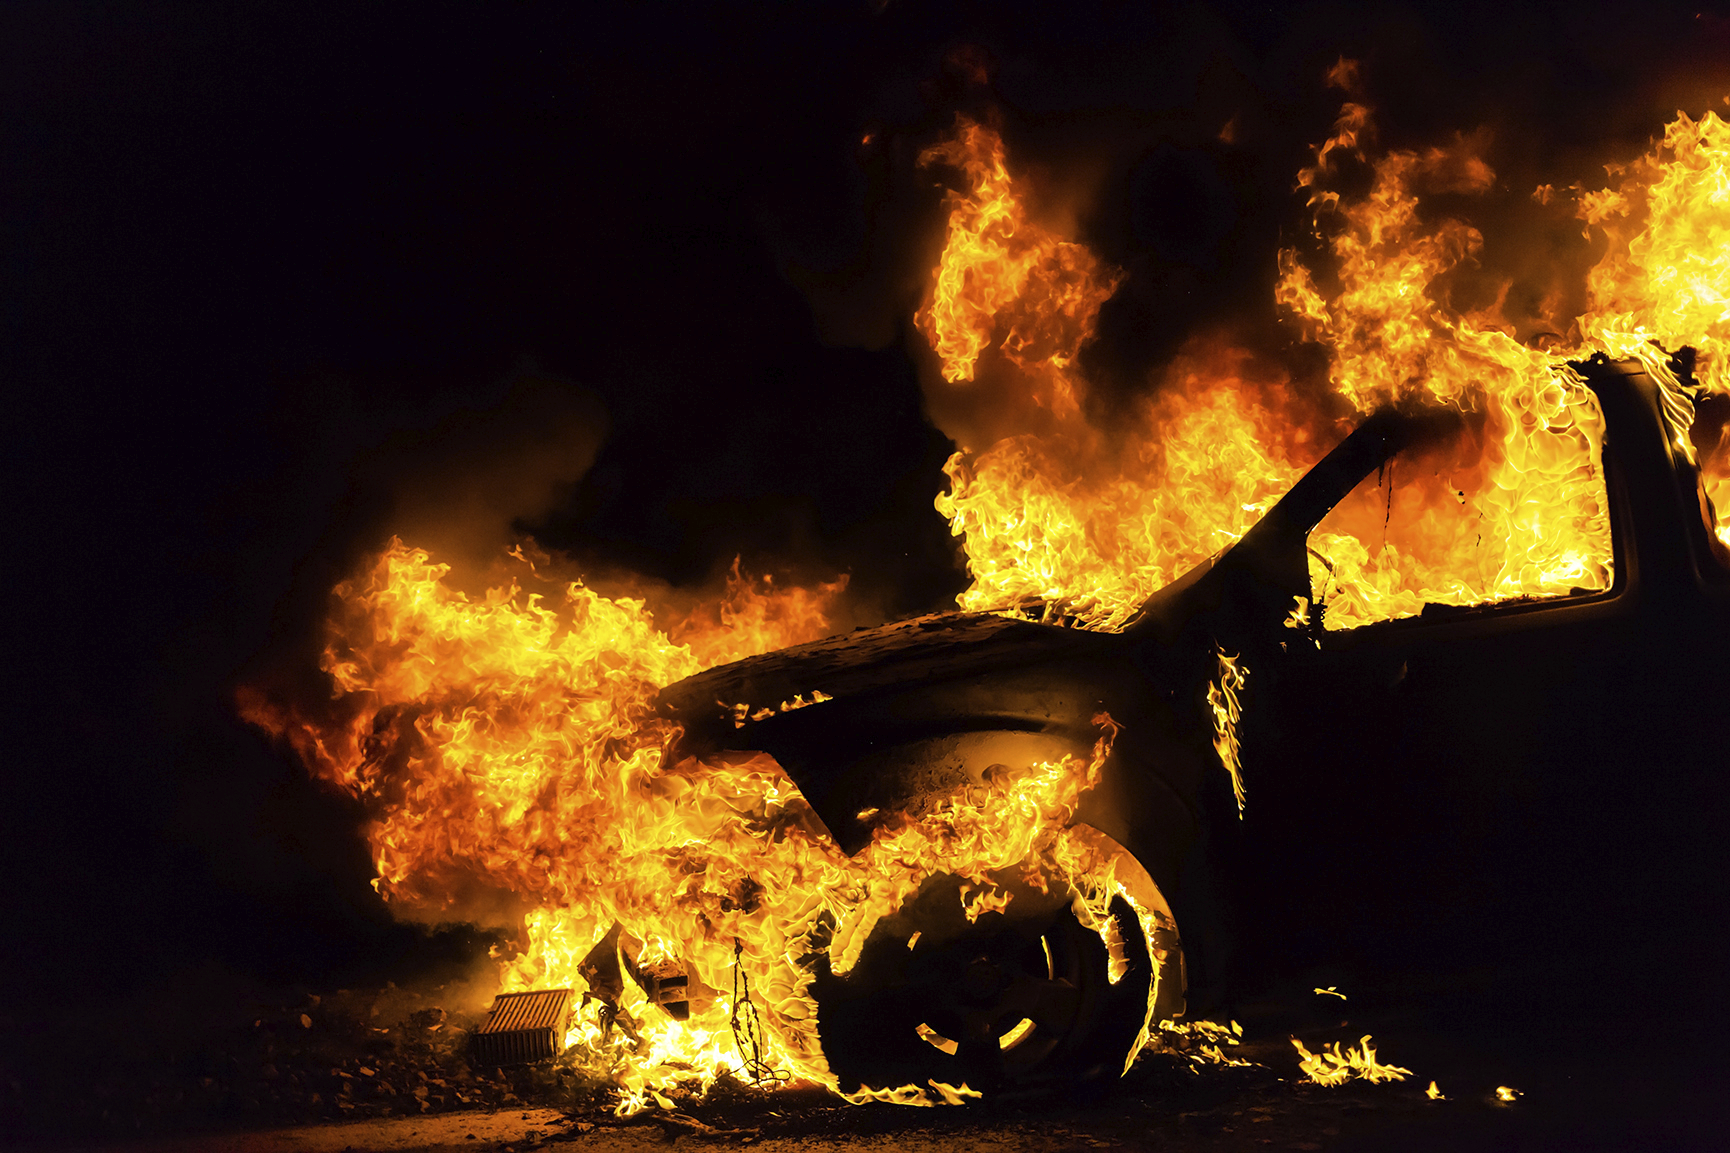 Behind the burning cars, something else is smouldering (photo: iStock)